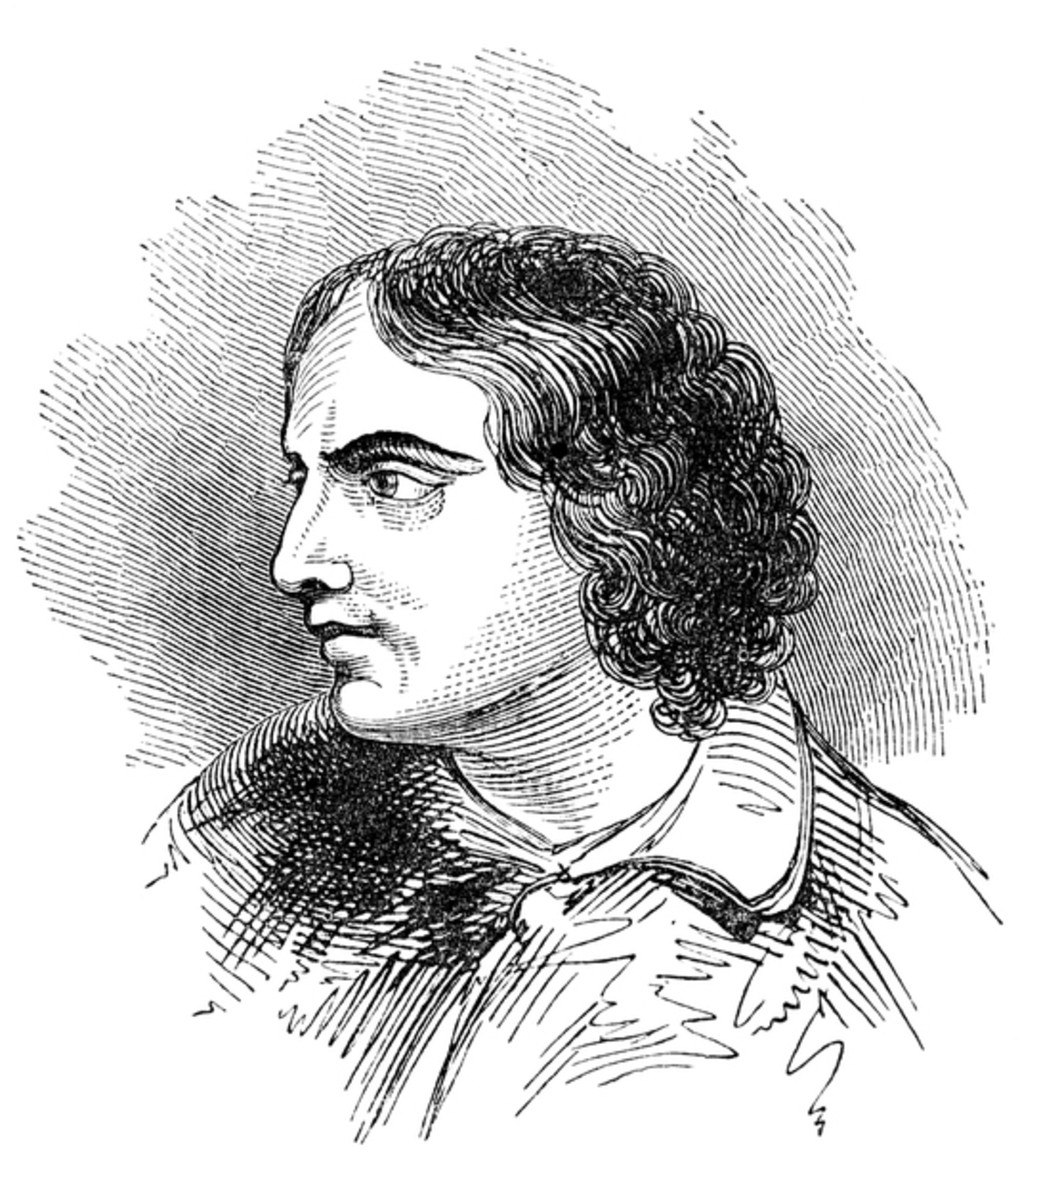 A black and white pencil sketch of the poet, John Keats, who succumbed to tuberculosis in 1821.